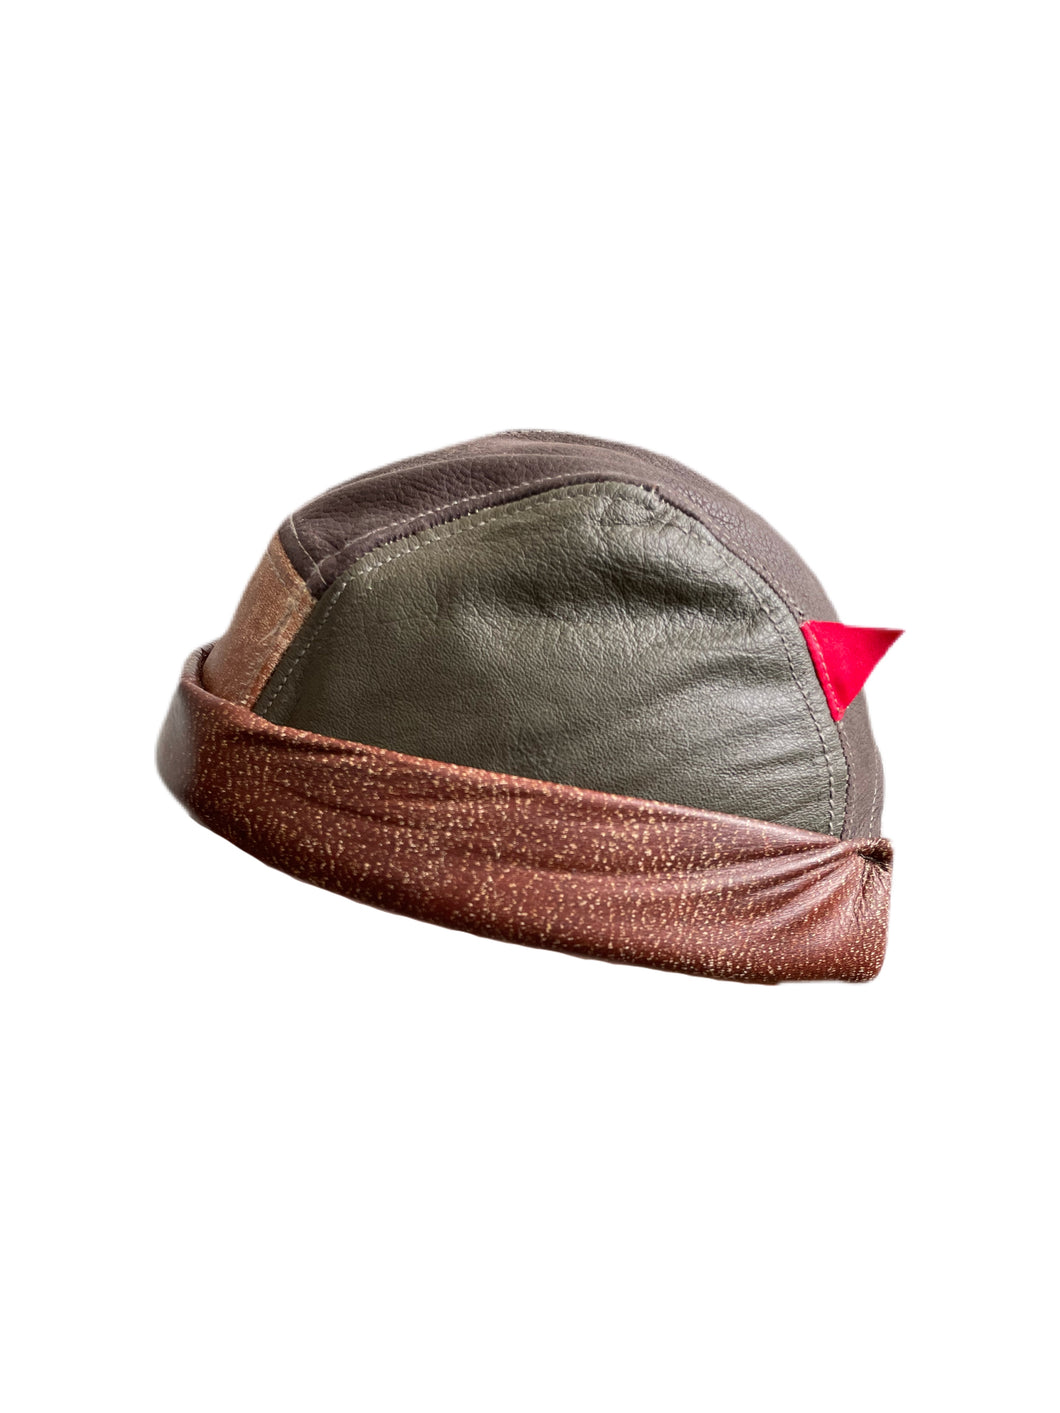 R3 CrewCap Sport [Brown Bishop]